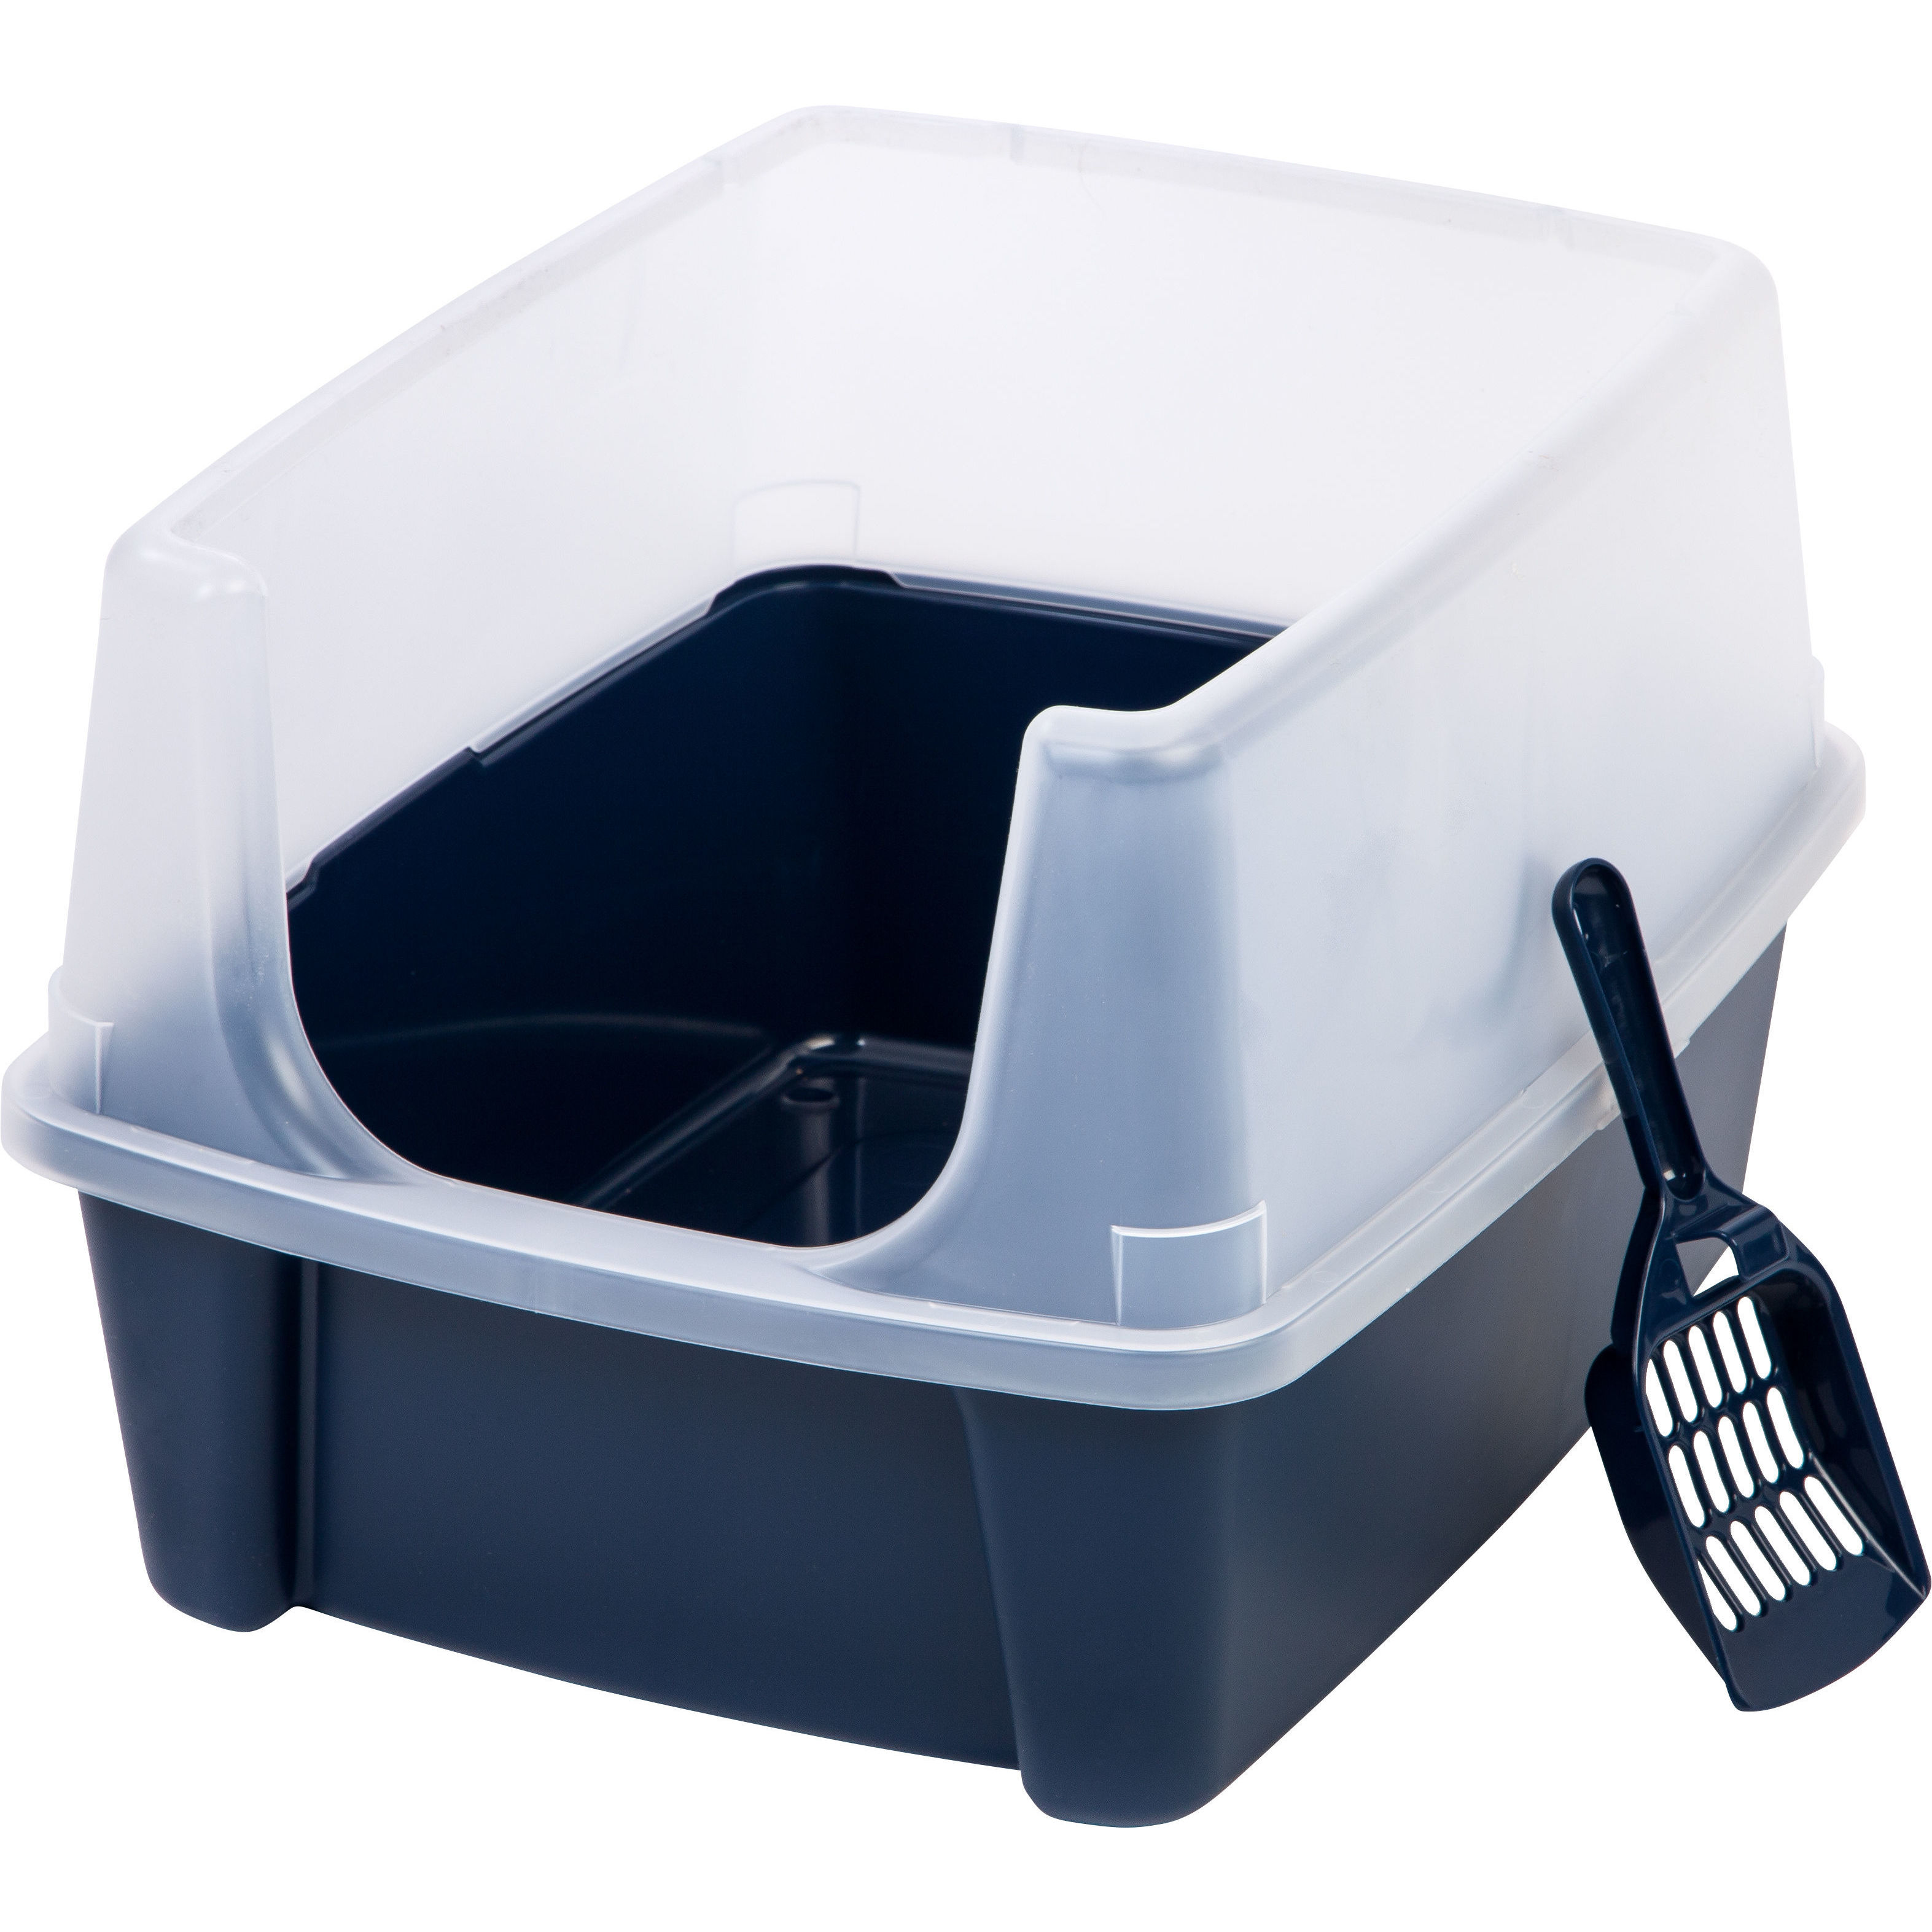 IRIS Litter Box with Shield and Scoop (White)